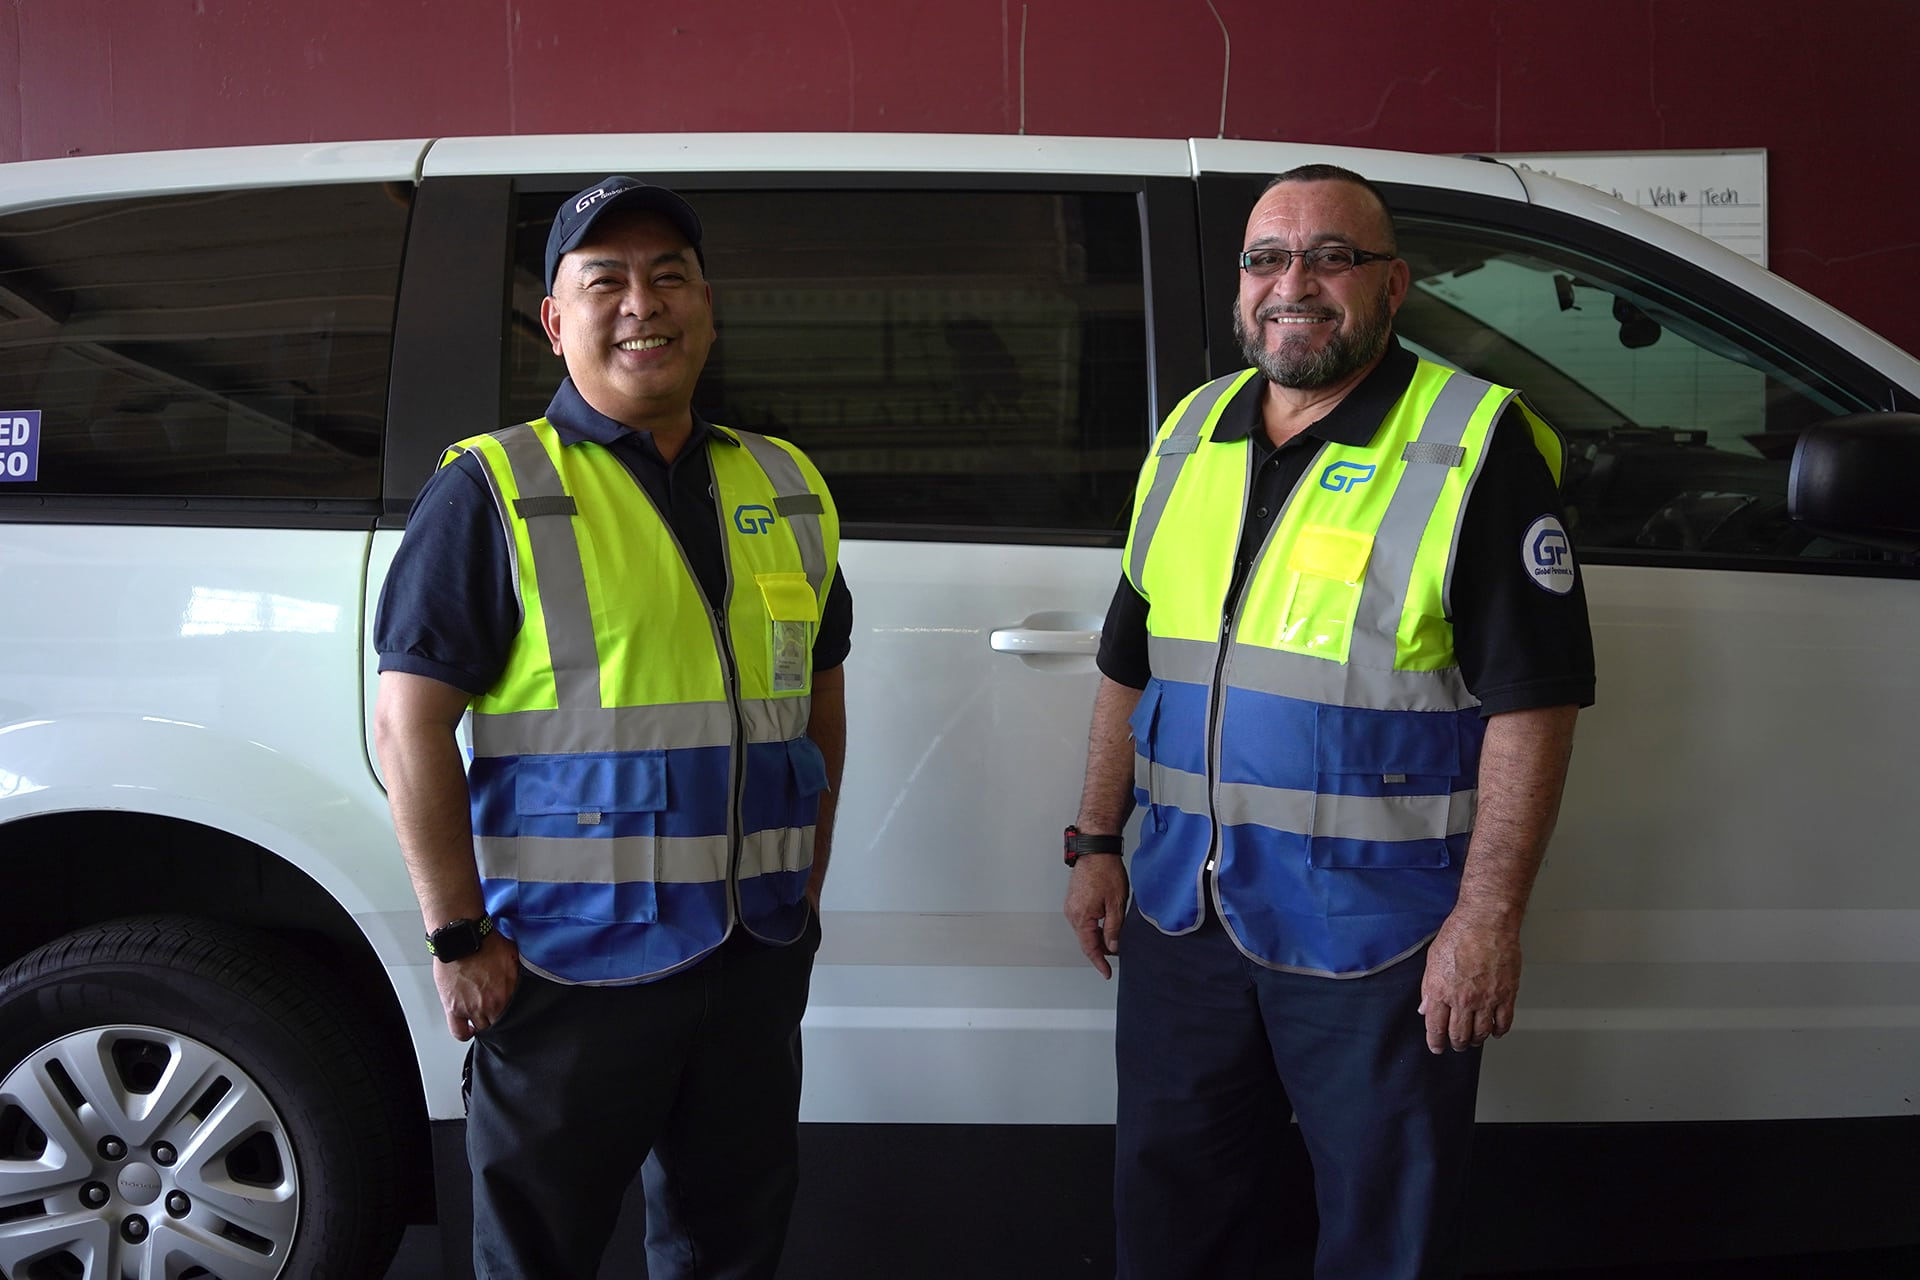 GPI Drivers Paratransit Global Paratransit